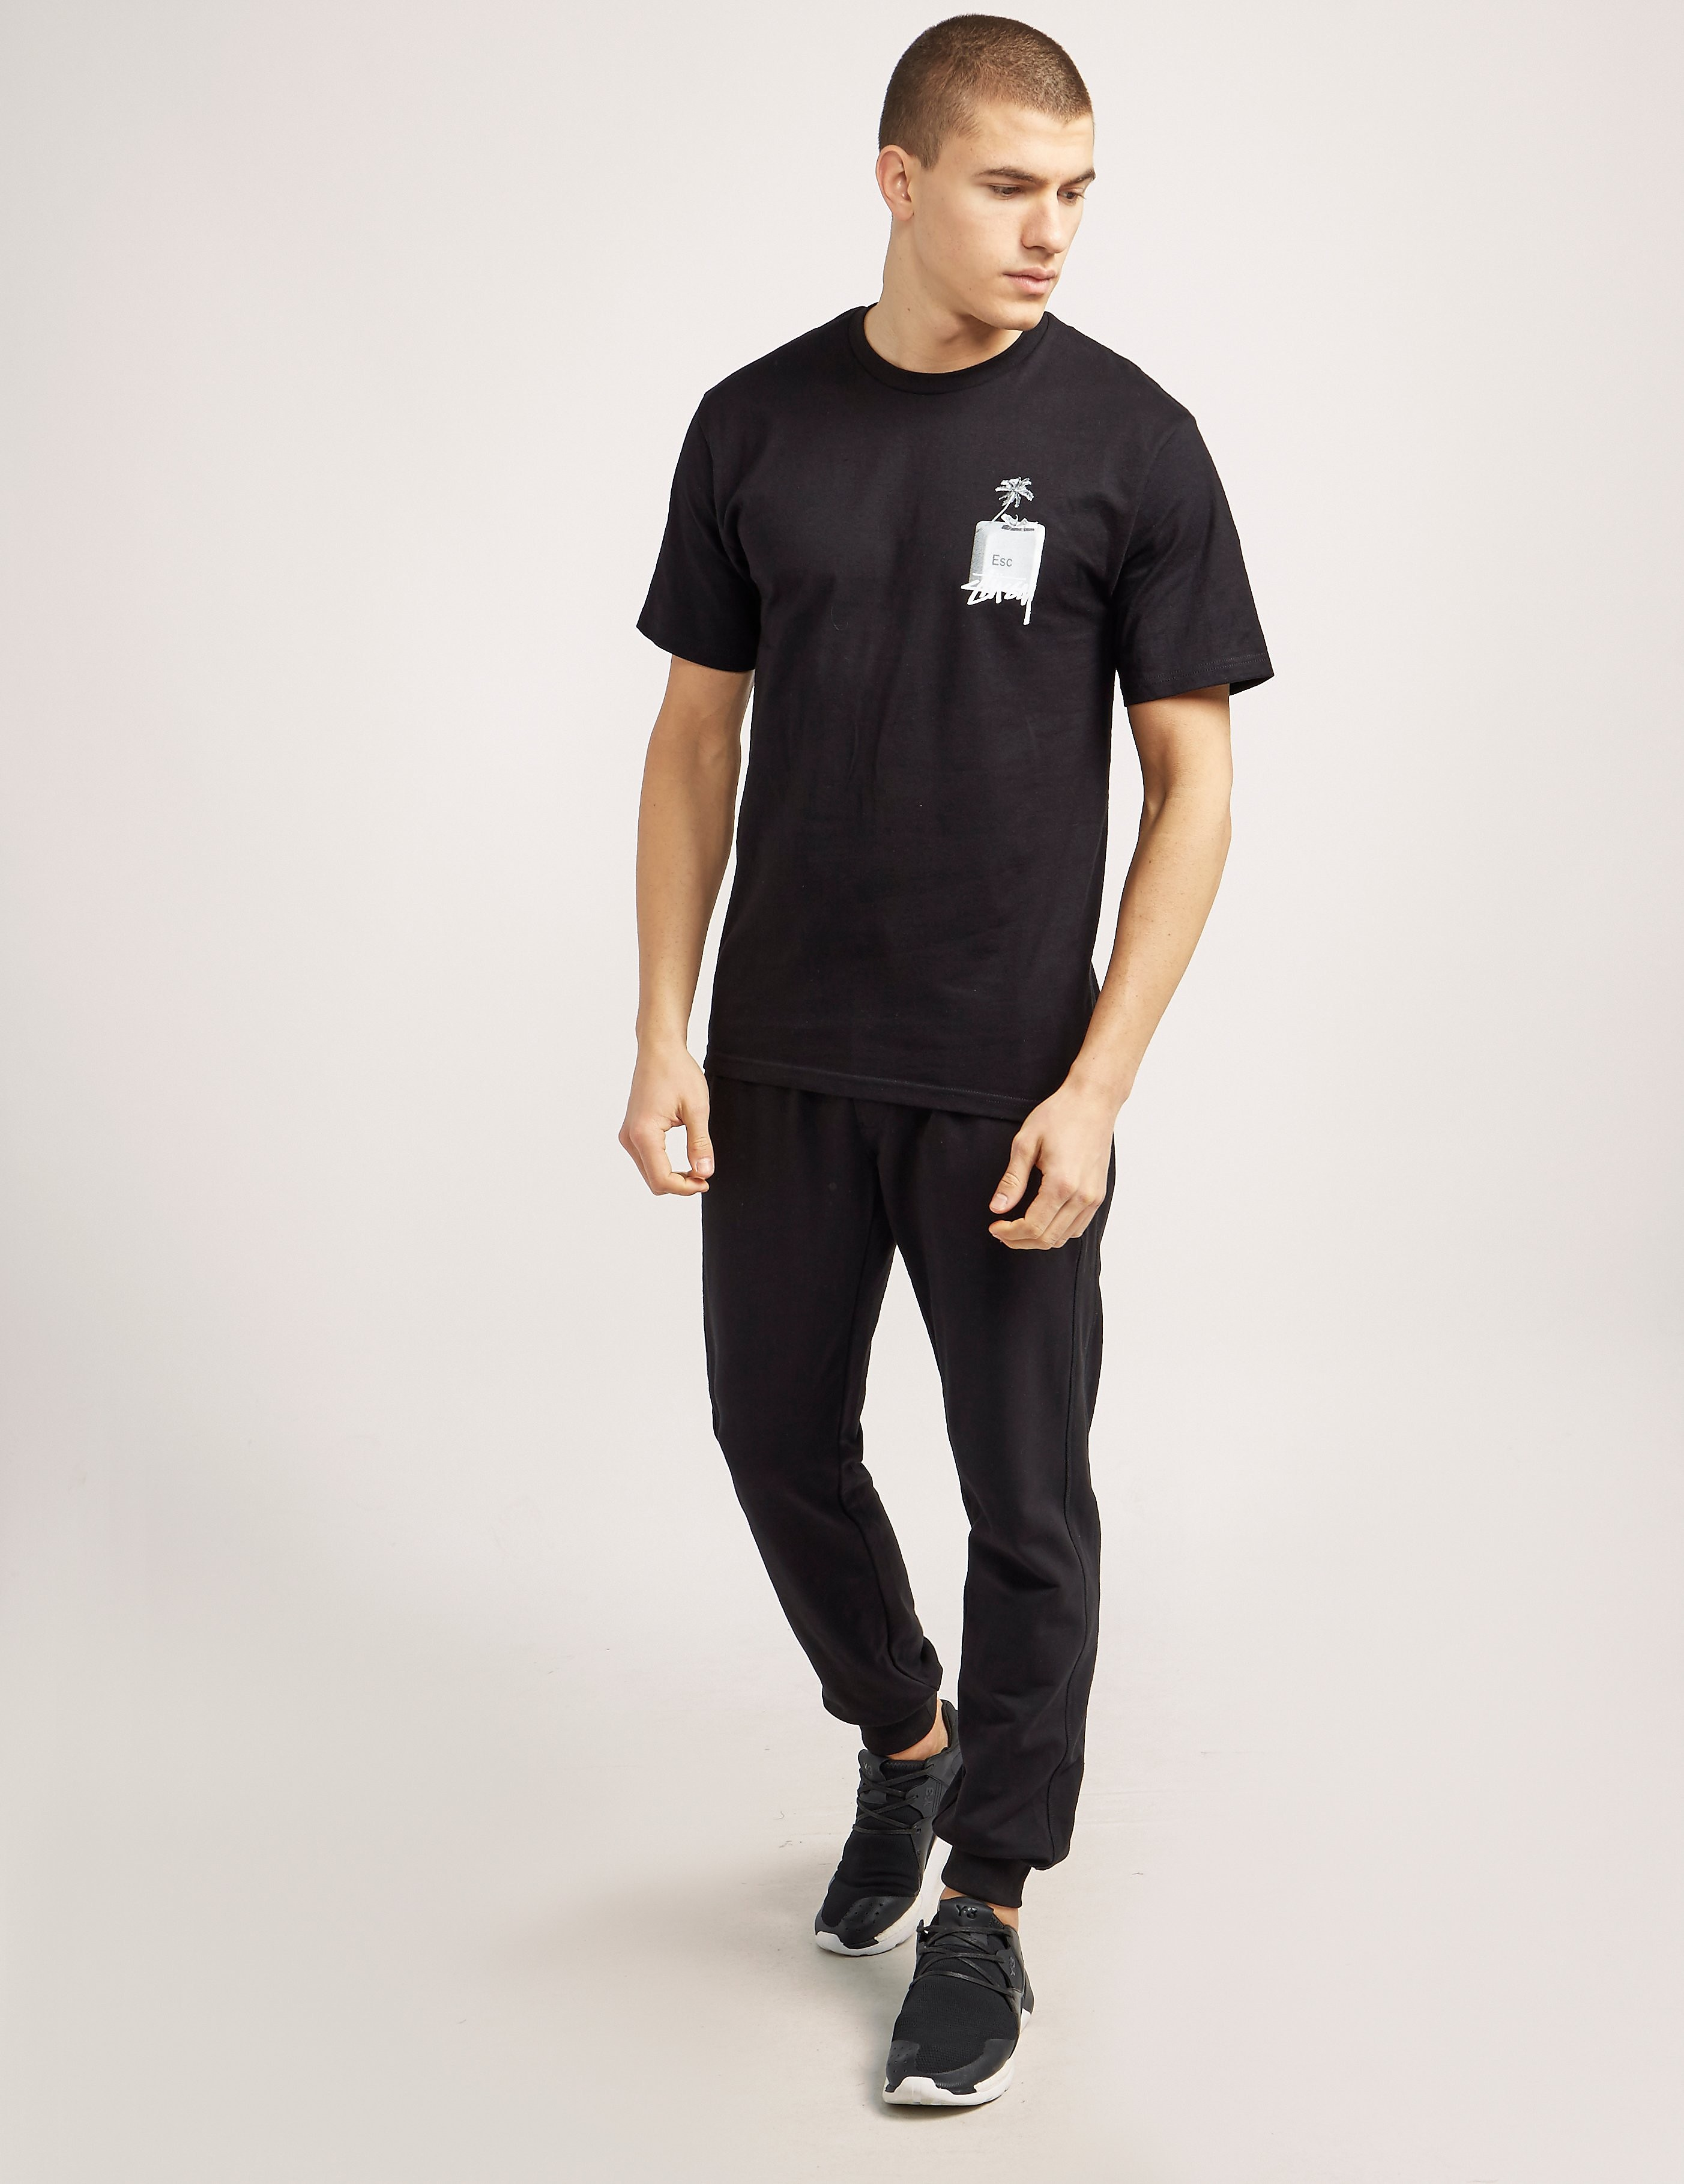 Stussy Esc Short Sleeve T-Shirt